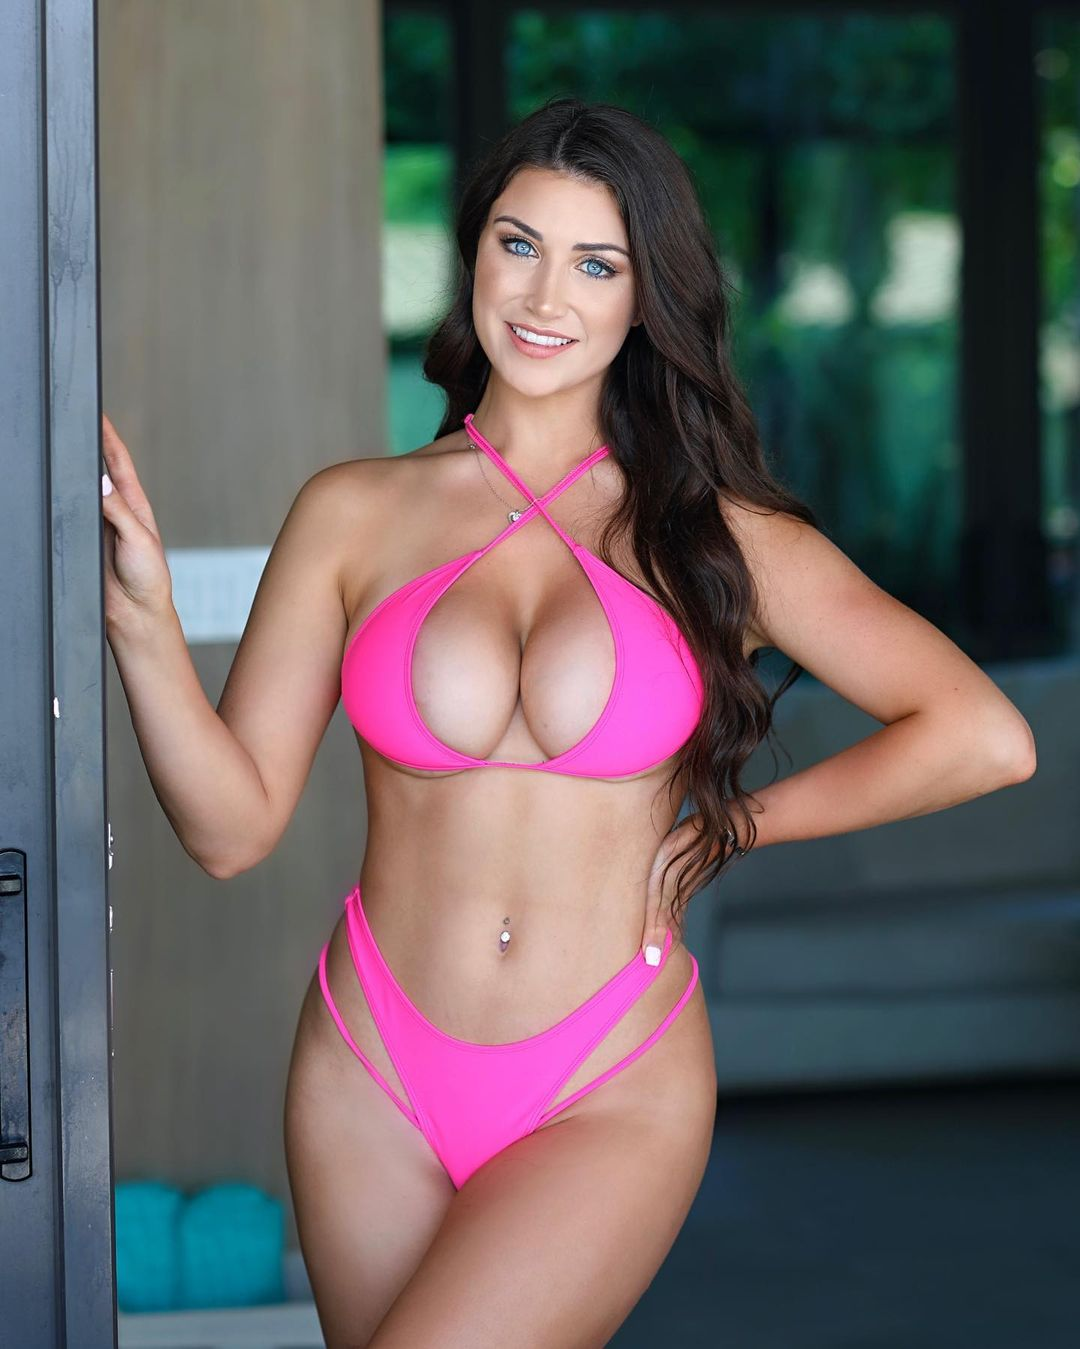 Instagram model Jessica Bartlett beauty and success boost her net worth 2